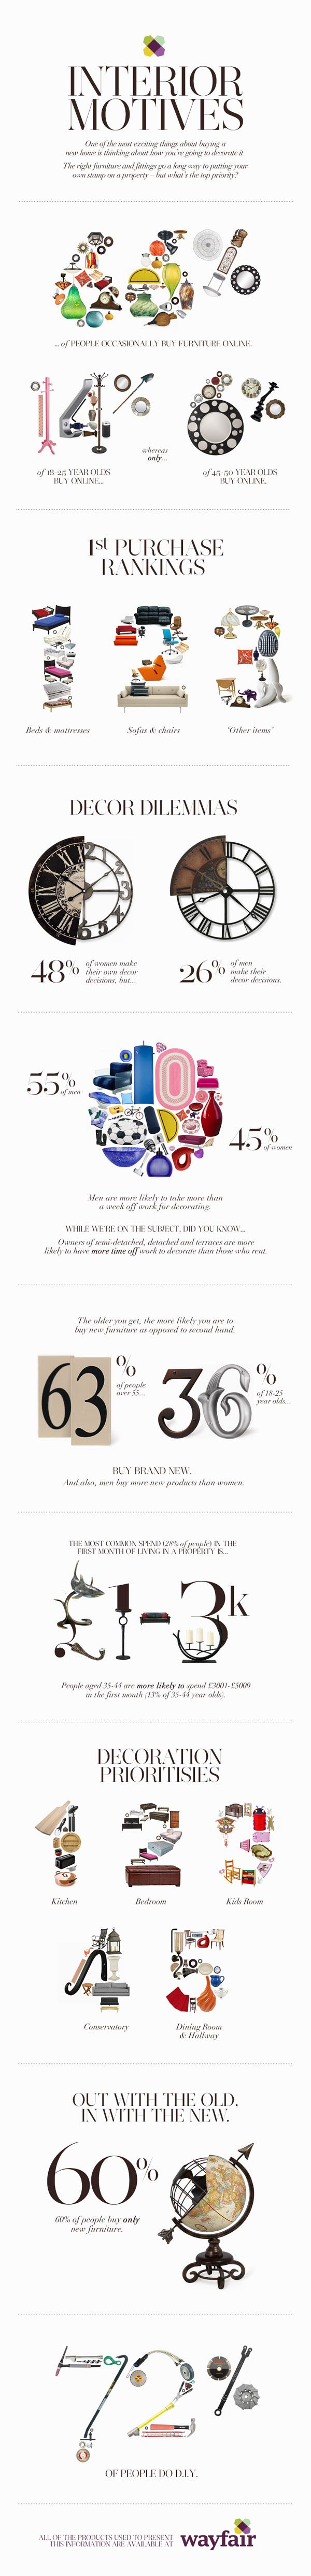 interior motives infographi What People Buy : Purchasing Trends in Home Decor [Infographic]